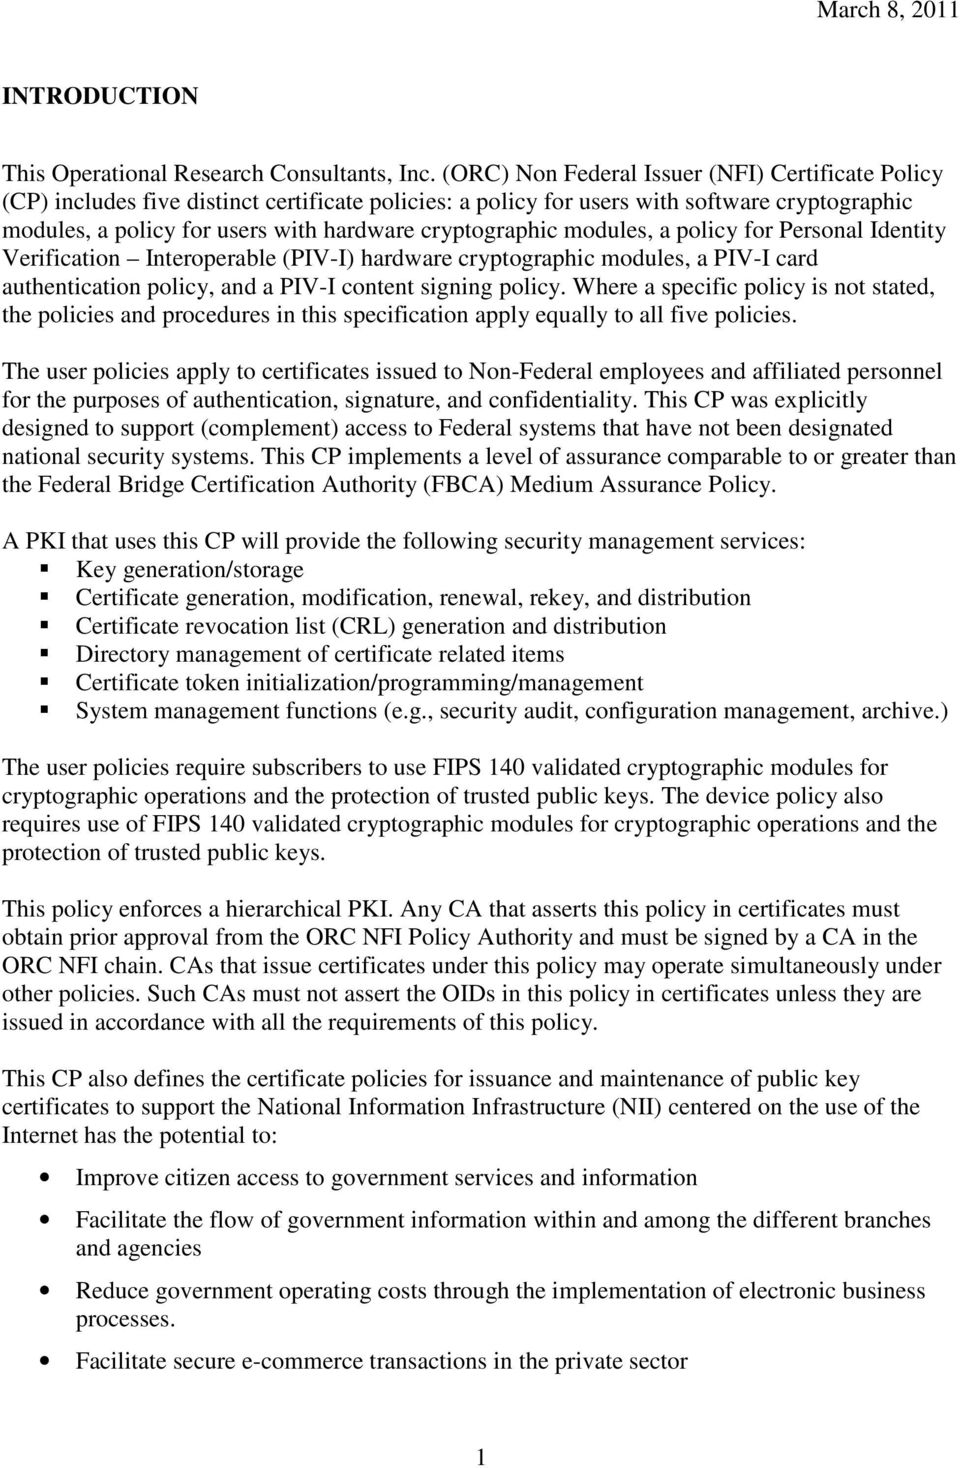 cryptographic modules, a policy for Personal Identity Verification Interoperable (PIV-I) hardware cryptographic modules, a PIV-I card authentication policy, and a PIV-I content signing policy.